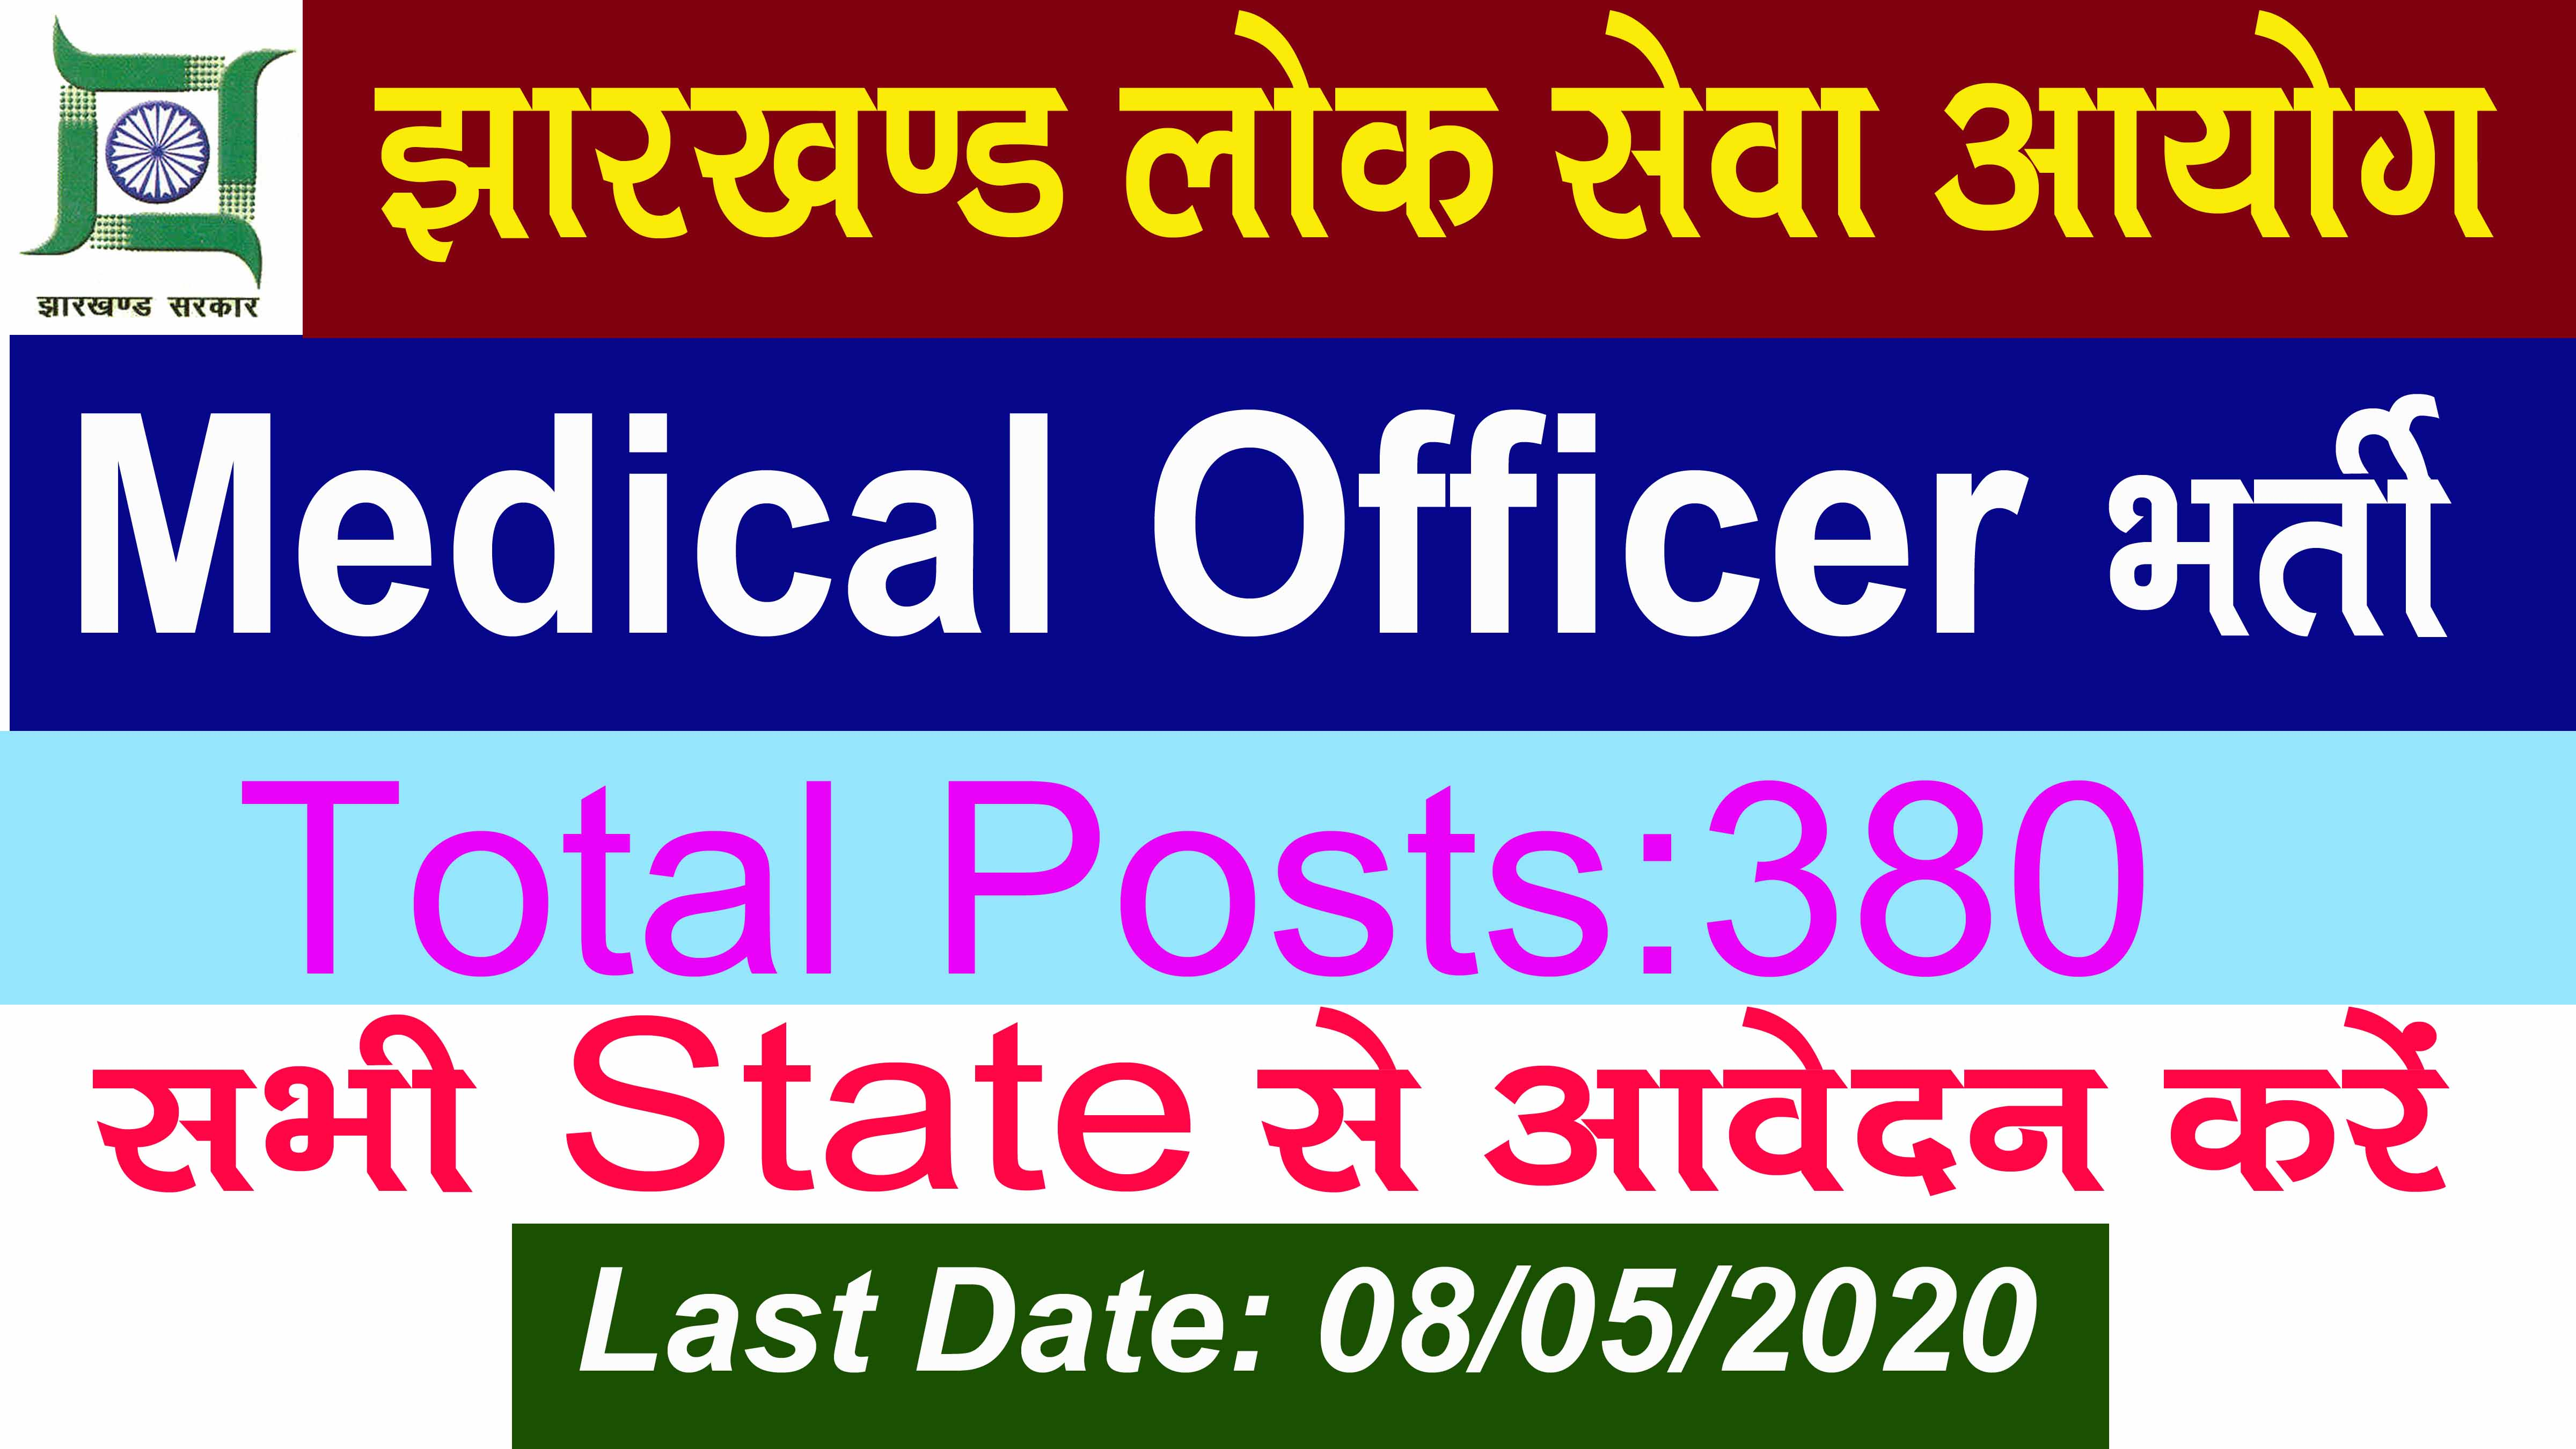 Jharkhand Medical Officer Vacancy